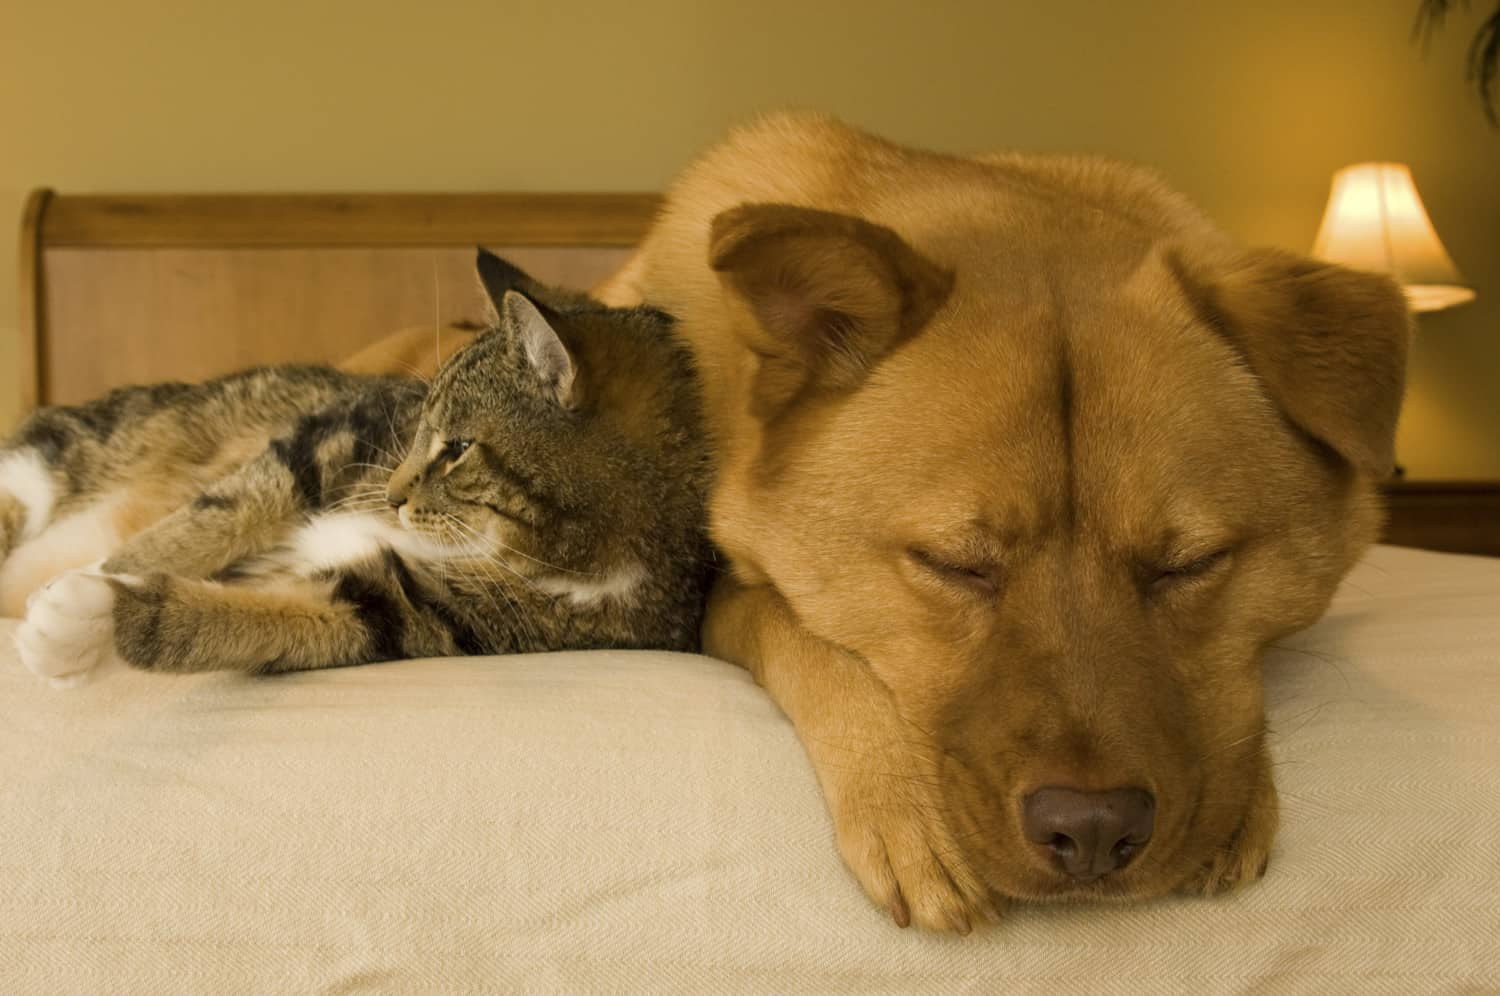 Cat and dog resting on bed